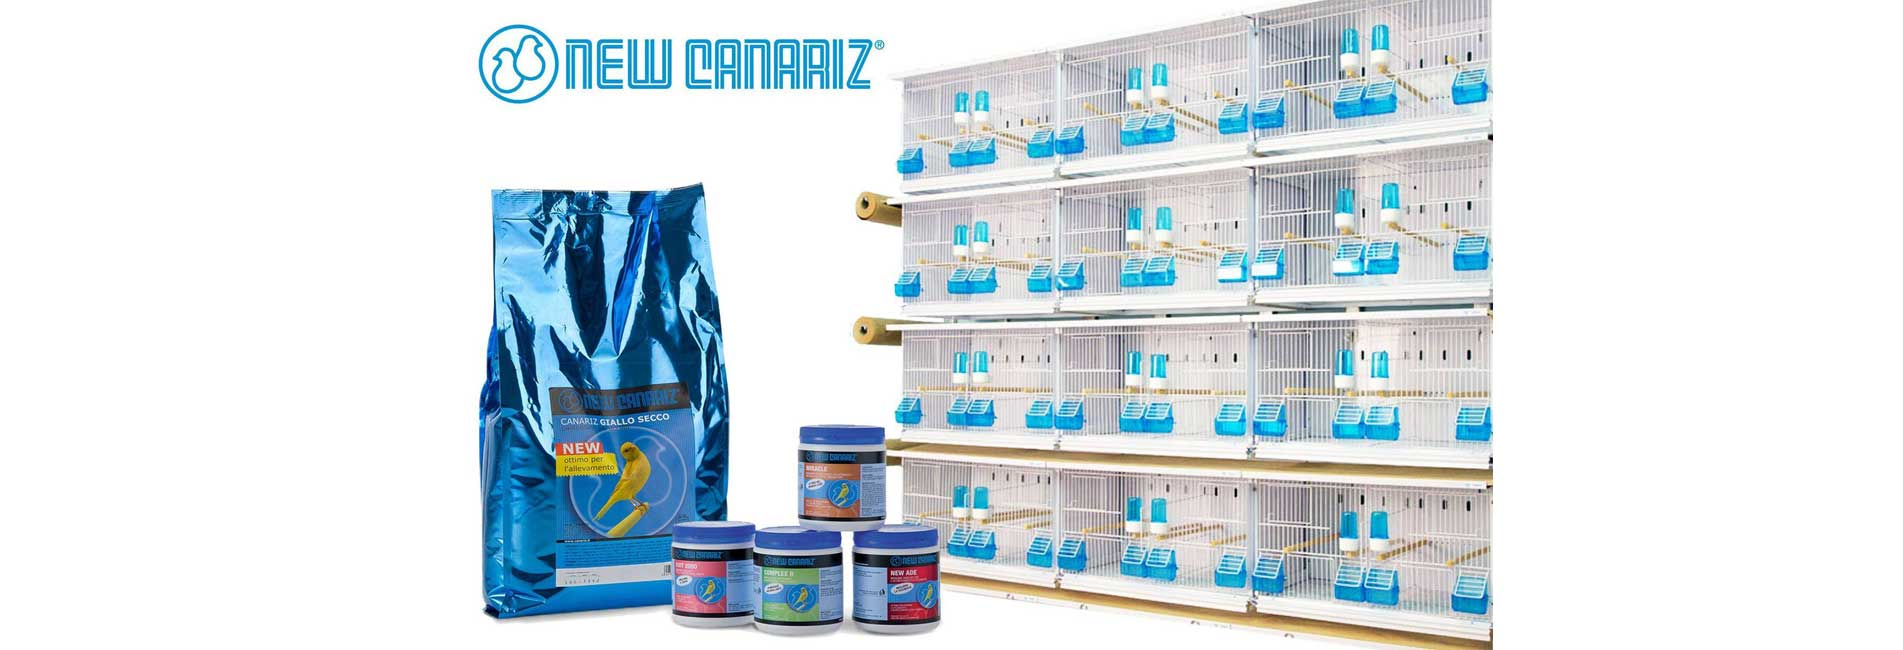 new canariz cages